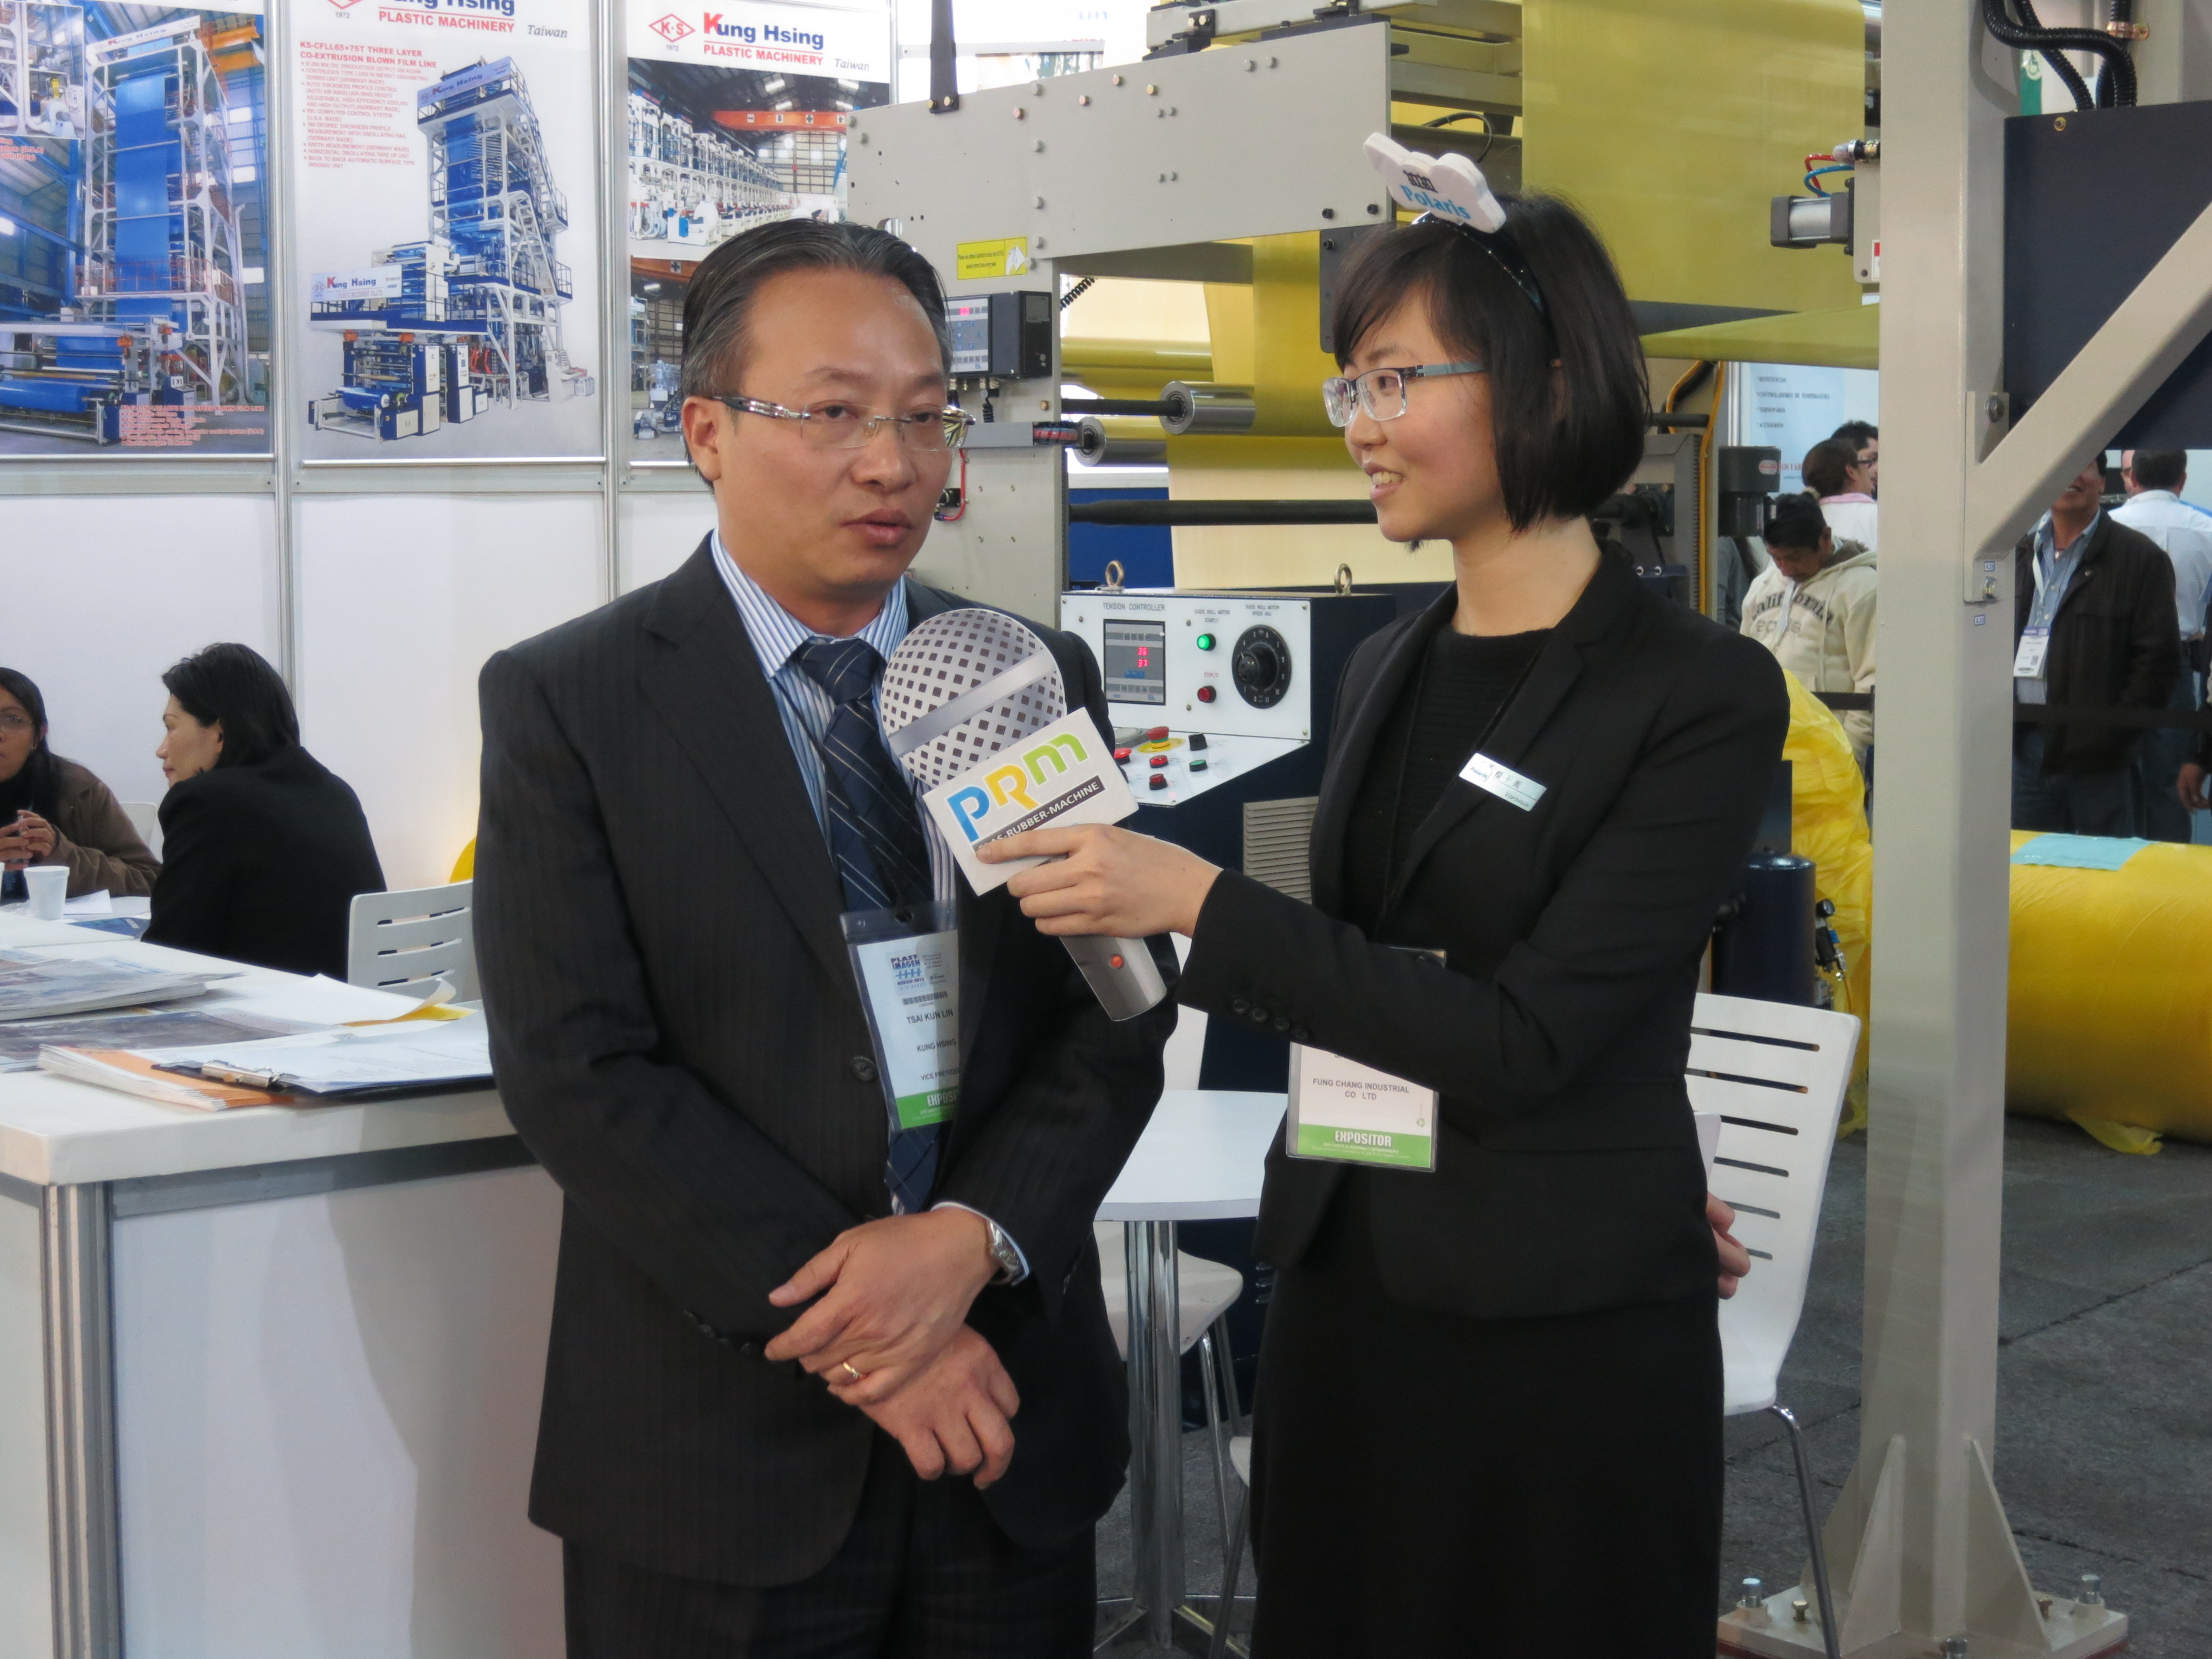 Interviewing with KUNG HSING